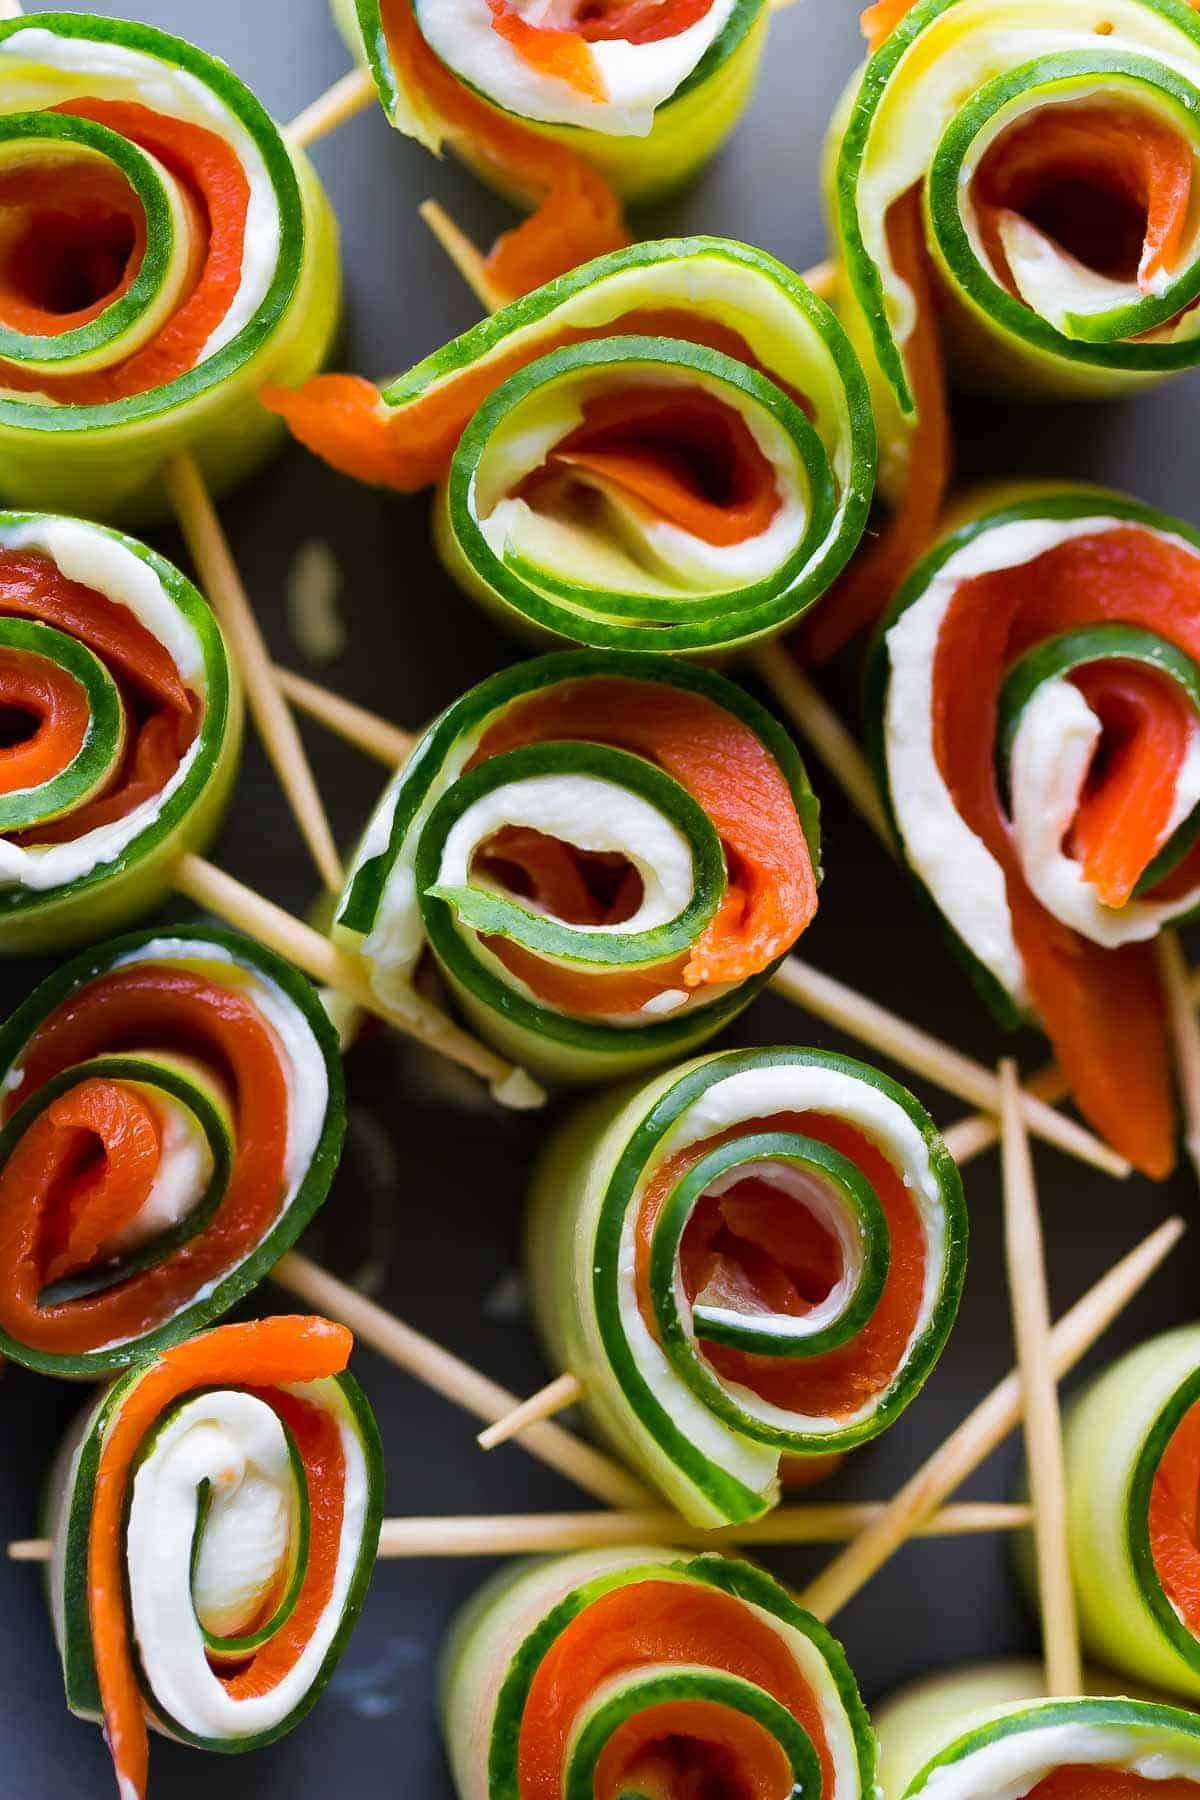 These smoked salmon cucumber roll-ups are the perfect (healthier) last-minute party appetizer! Gluten-free, low carb and only 3 ingredients!